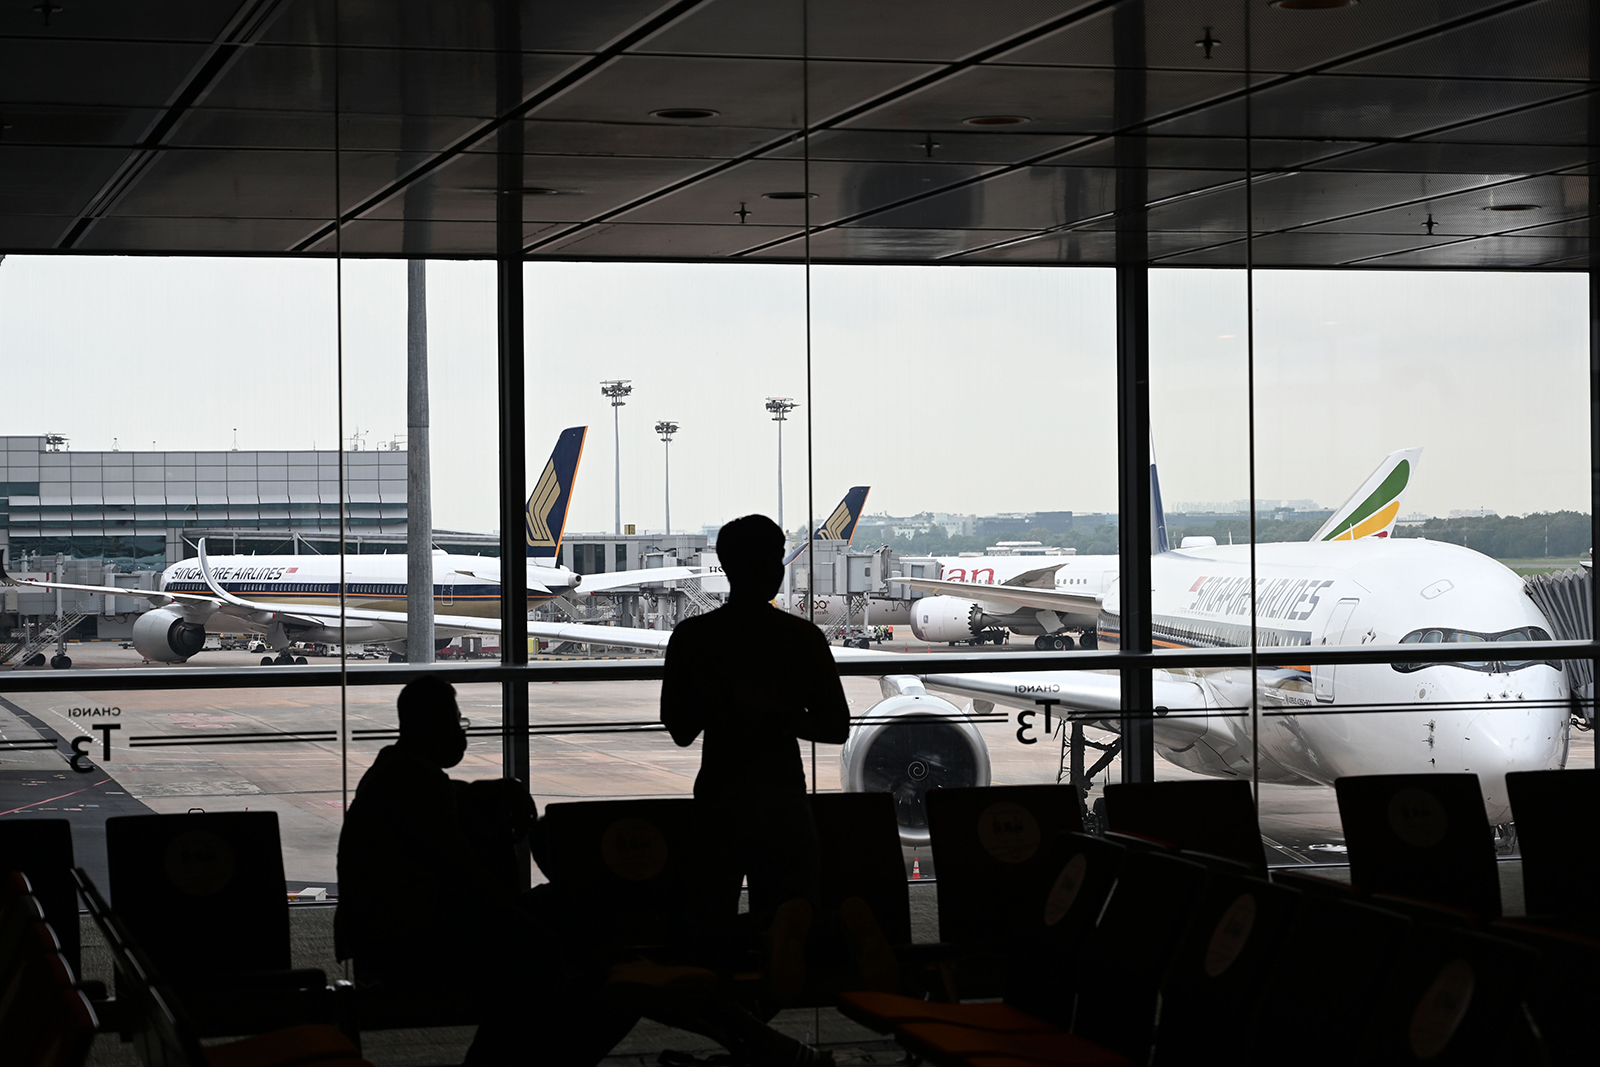 People are silhouetted against Singapore Airlines Airbus planes at Changi International Airport in Singapore on October 24.